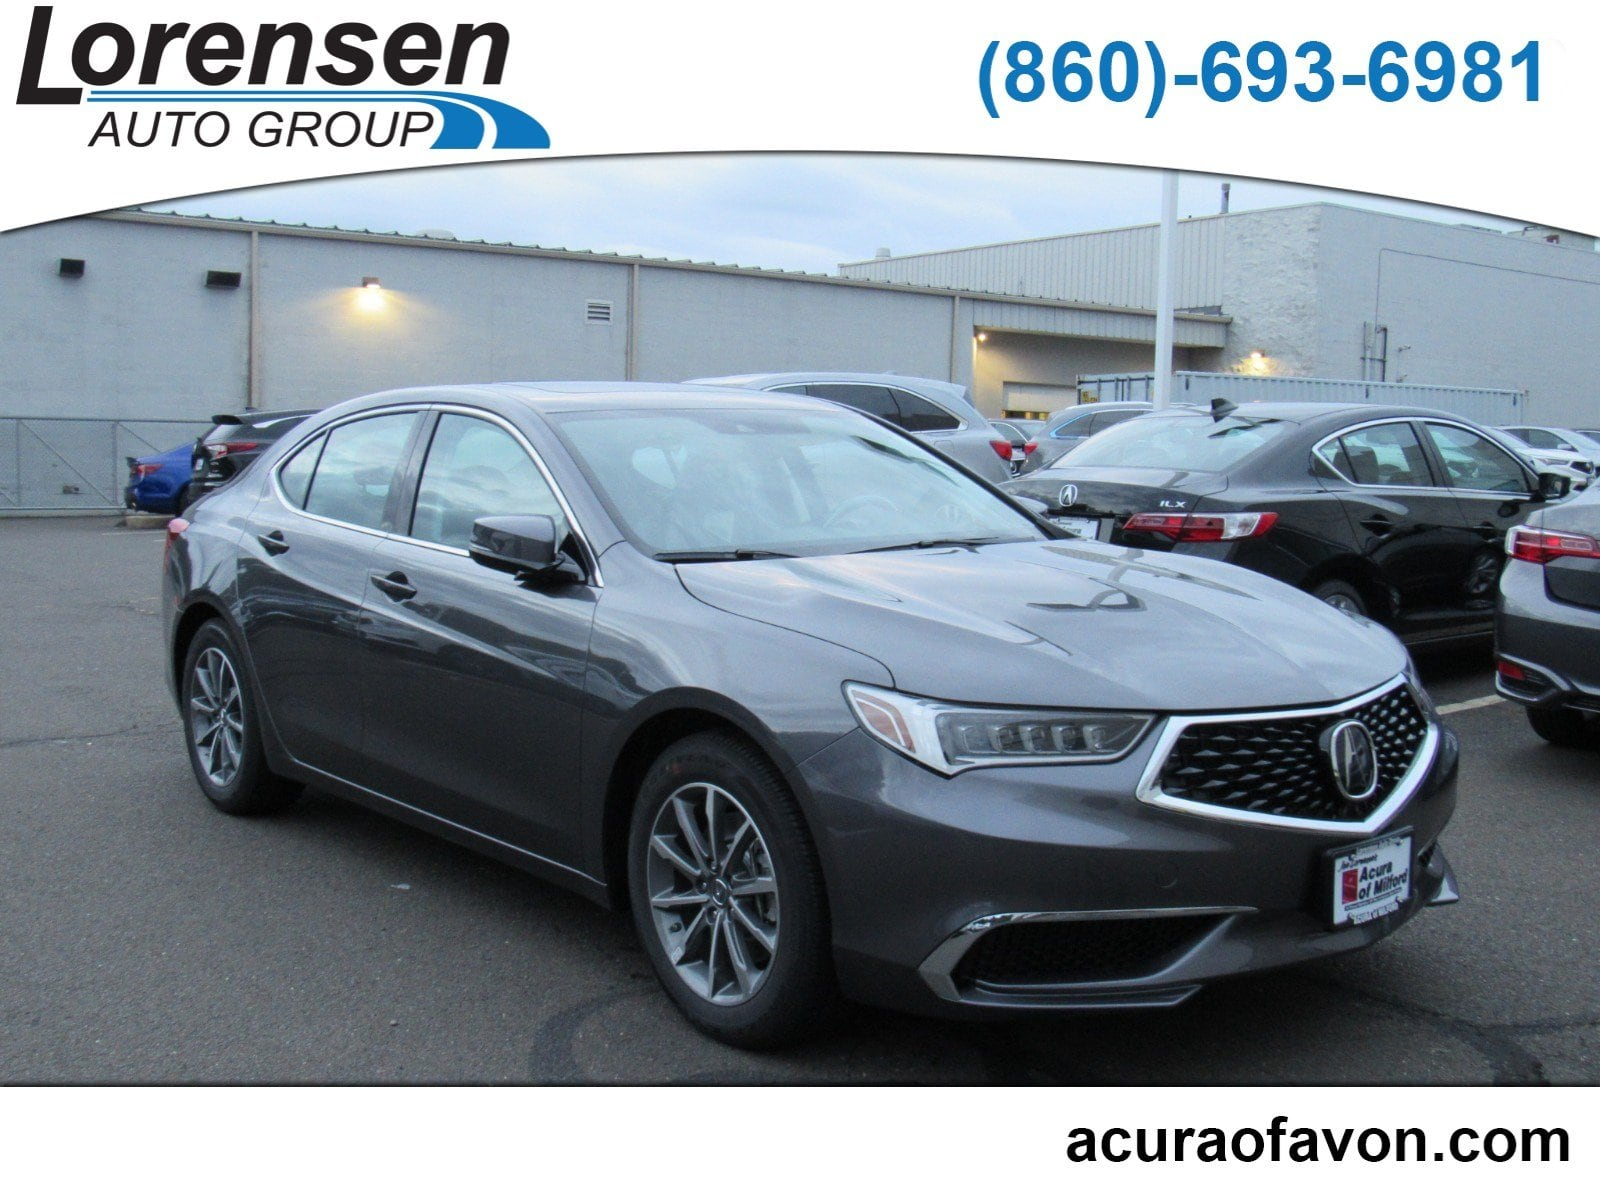 New 2019 Acura TLX 2 4 8 DCT P AWS Sedan in Canton S